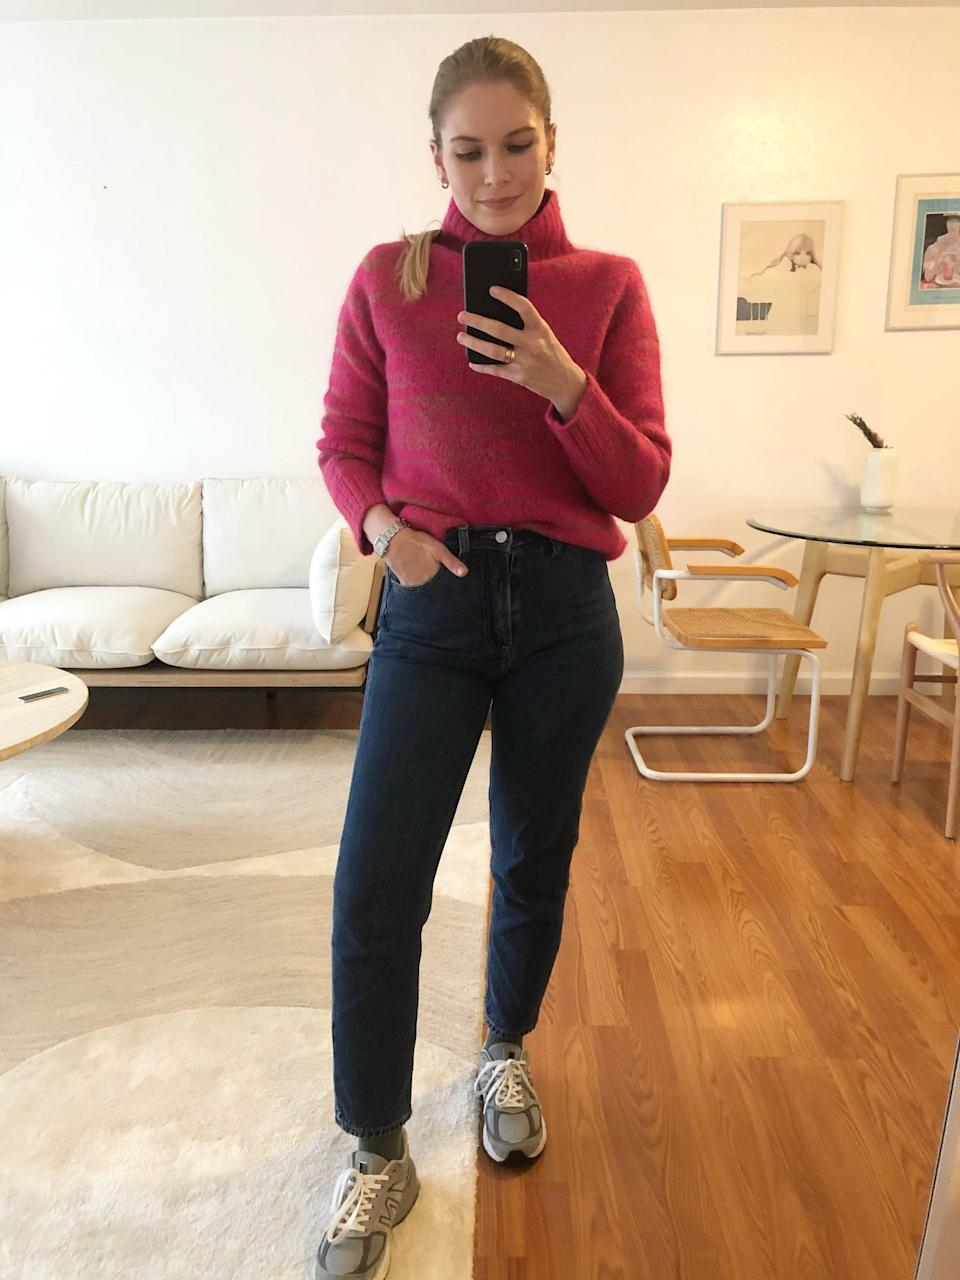 <p>For the days I'm seeing friends or running errands, the <span>Italian Spacedye Sweater</span> ($88, originally $110) is perfect with jeans and sneakers.</p>